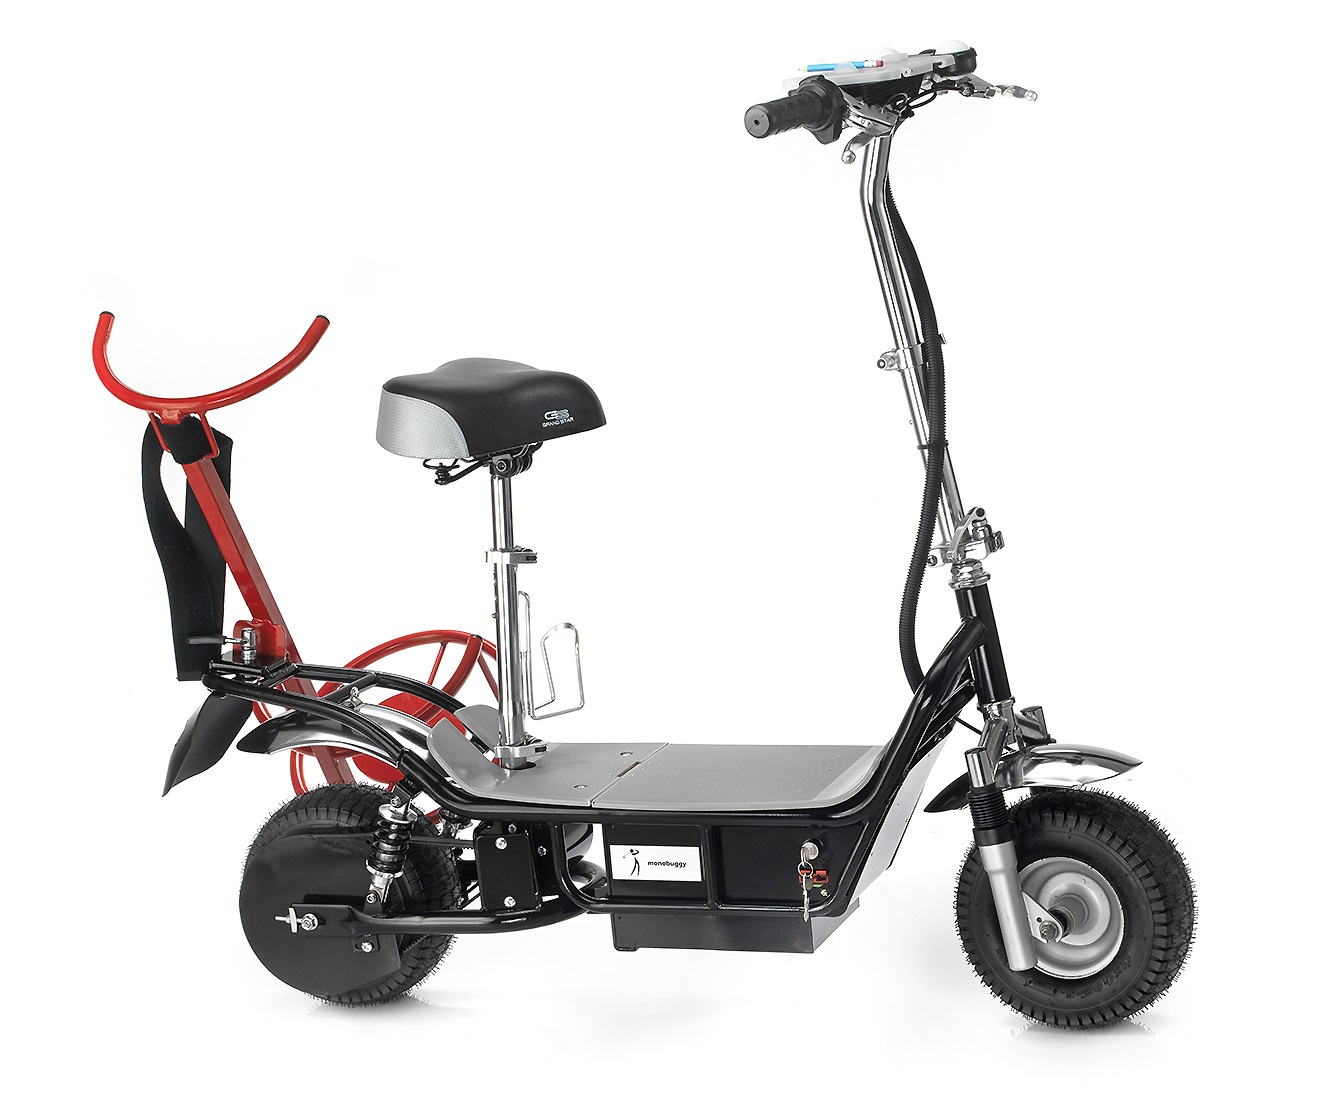 Scooter with Rack only from right side